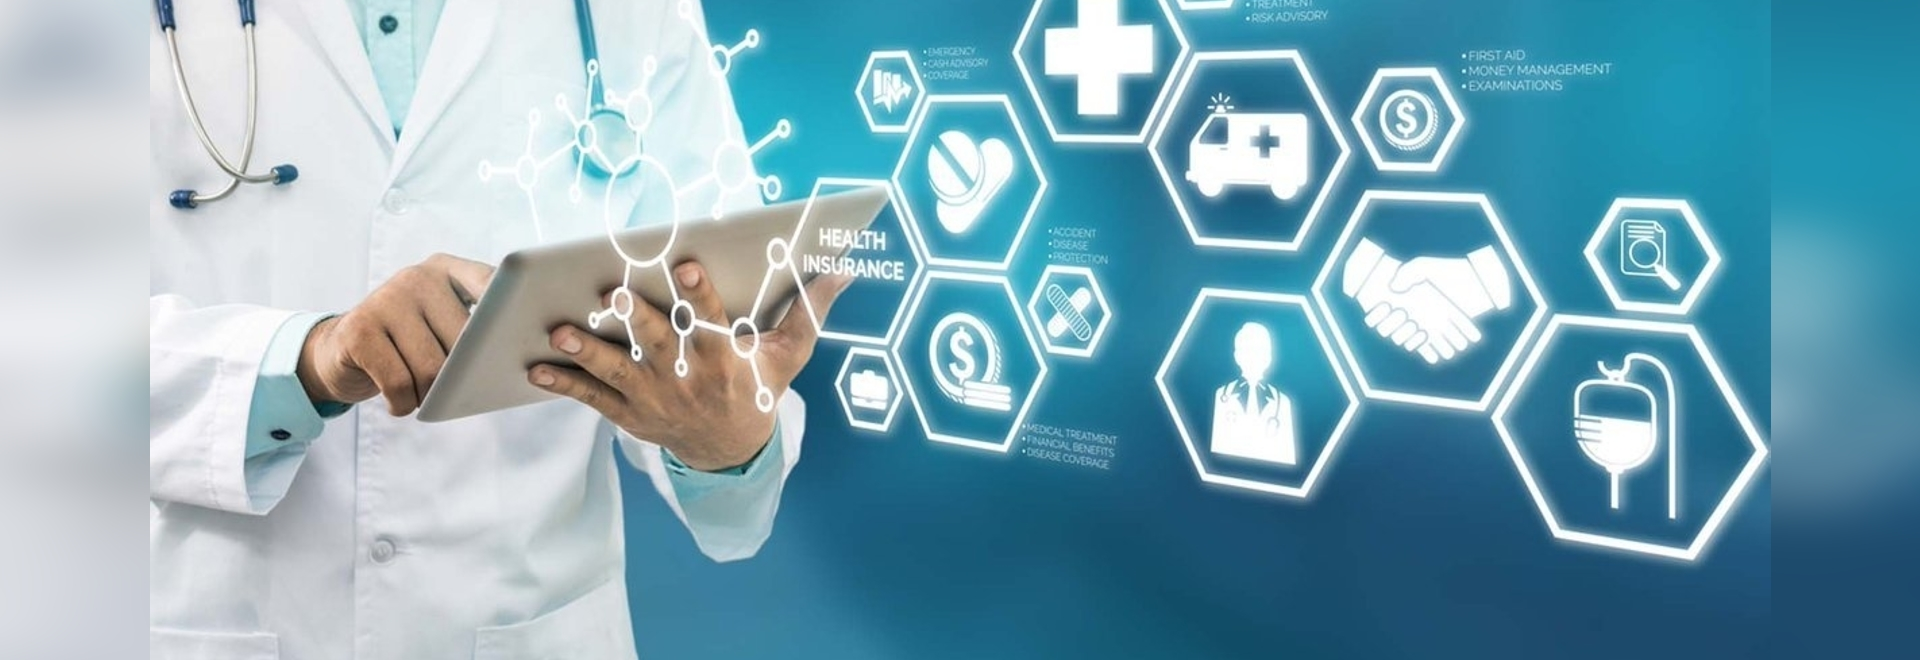 Healthcare IT Services and Their Role In 2021 Regulatory Compliance